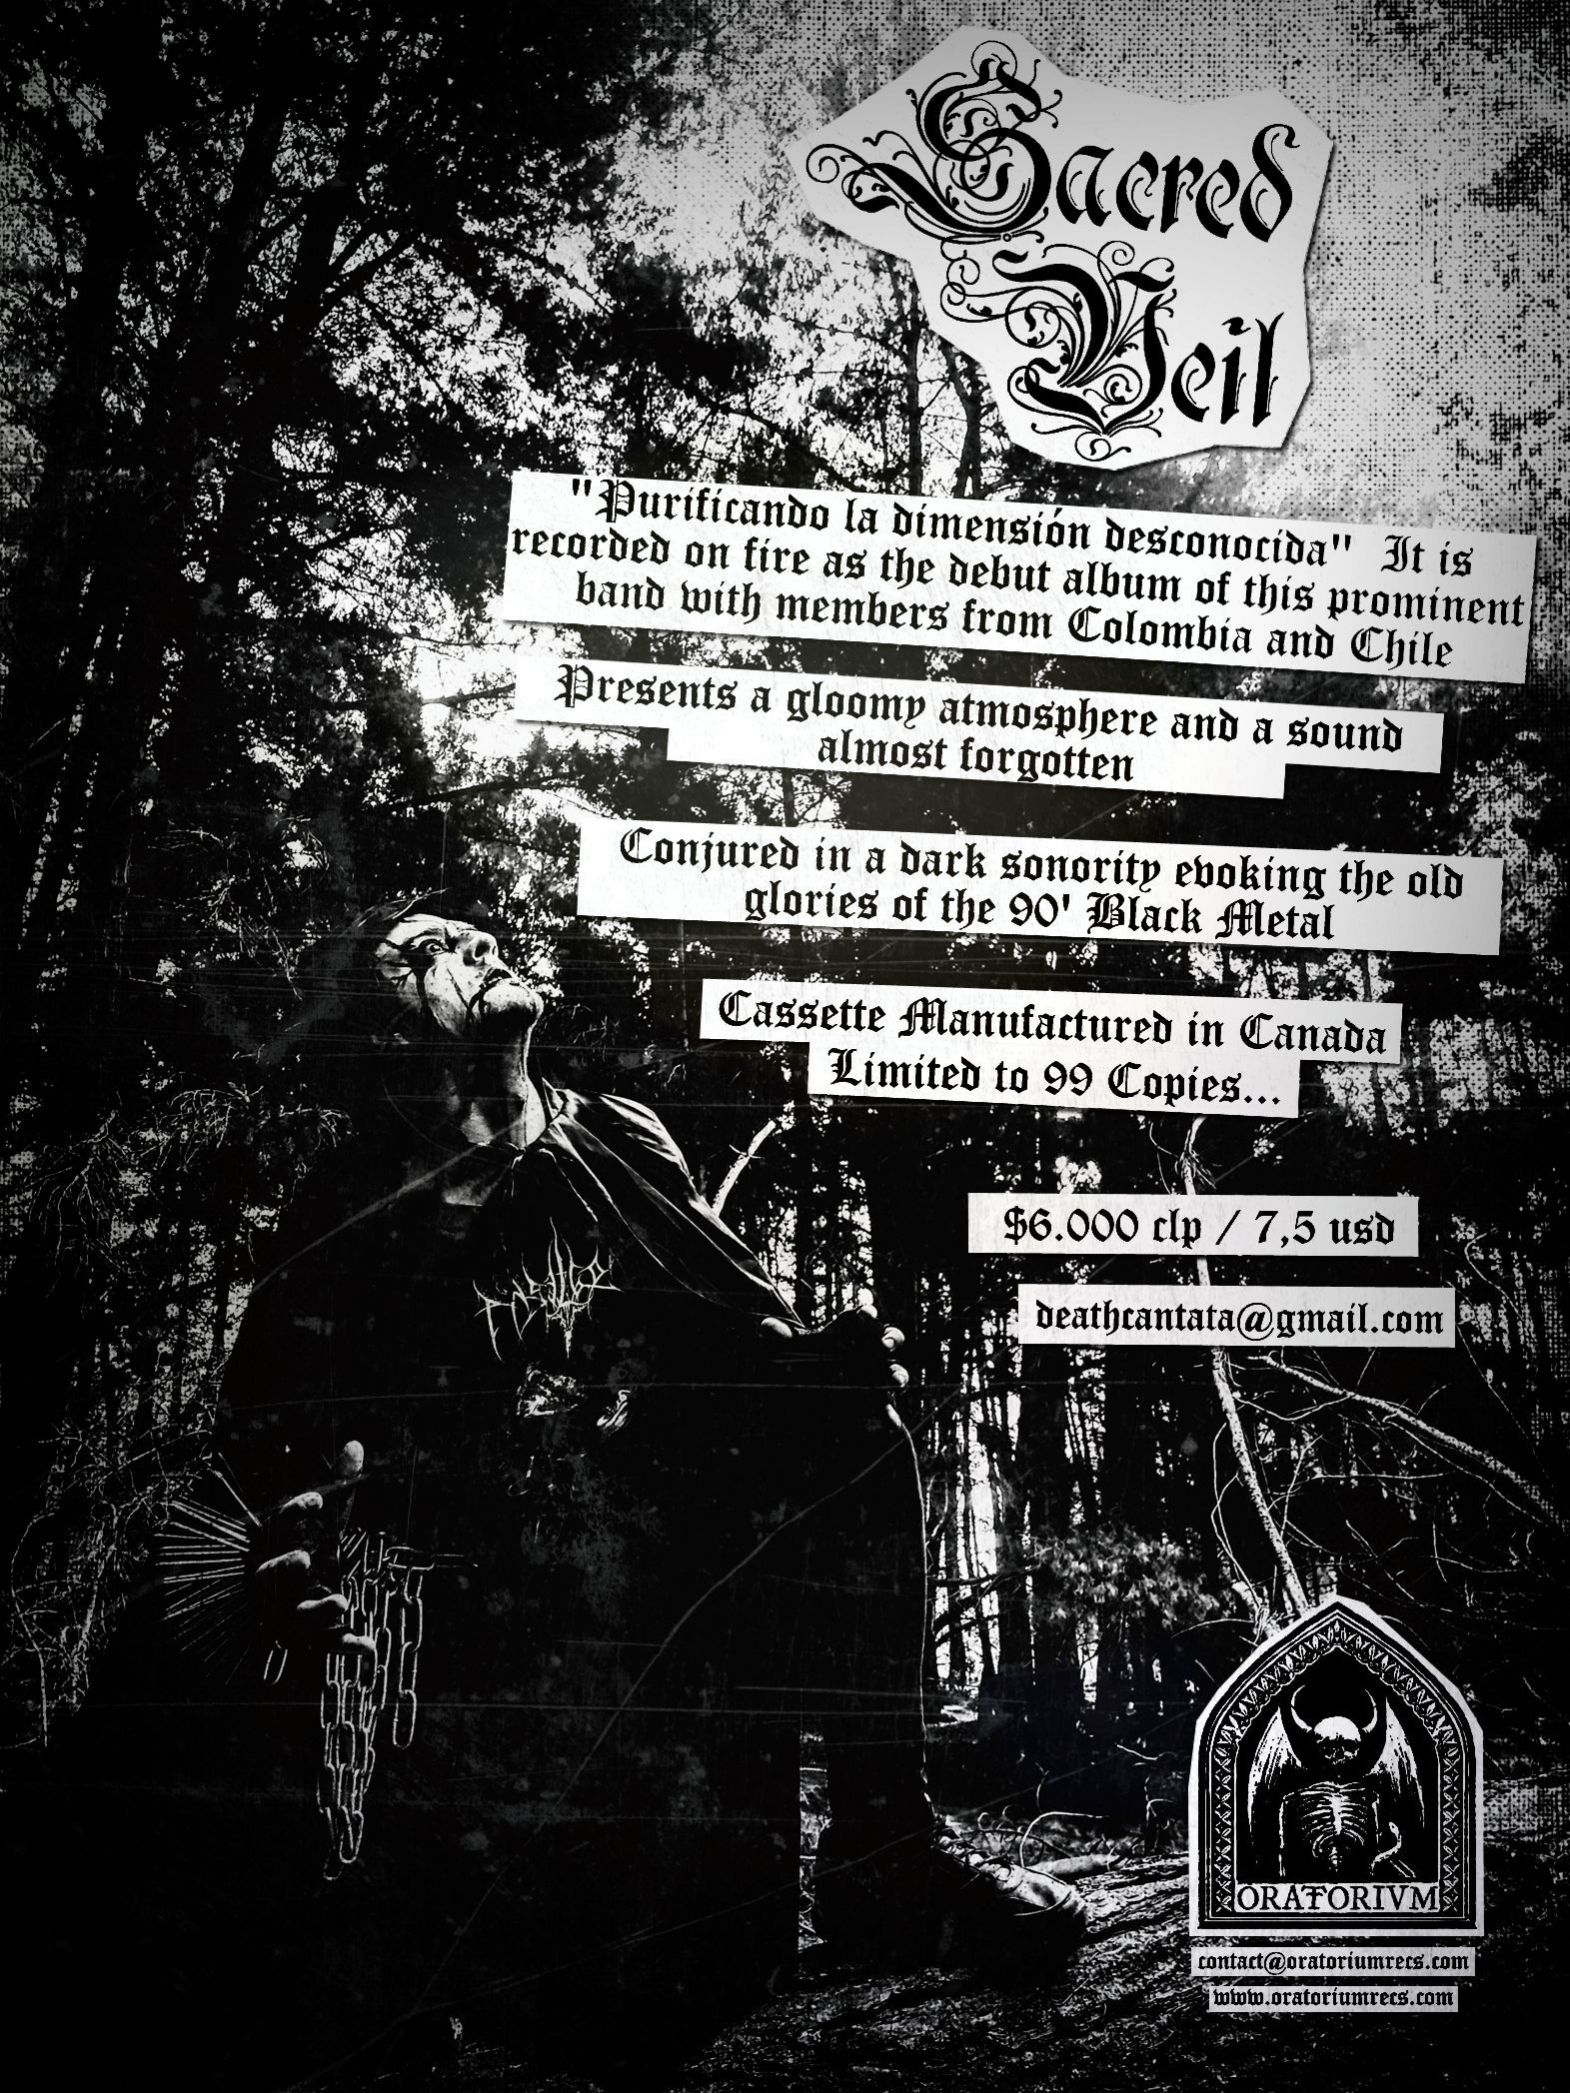 gallery/ora-mc005---sacred-veil_flyer1_ingles